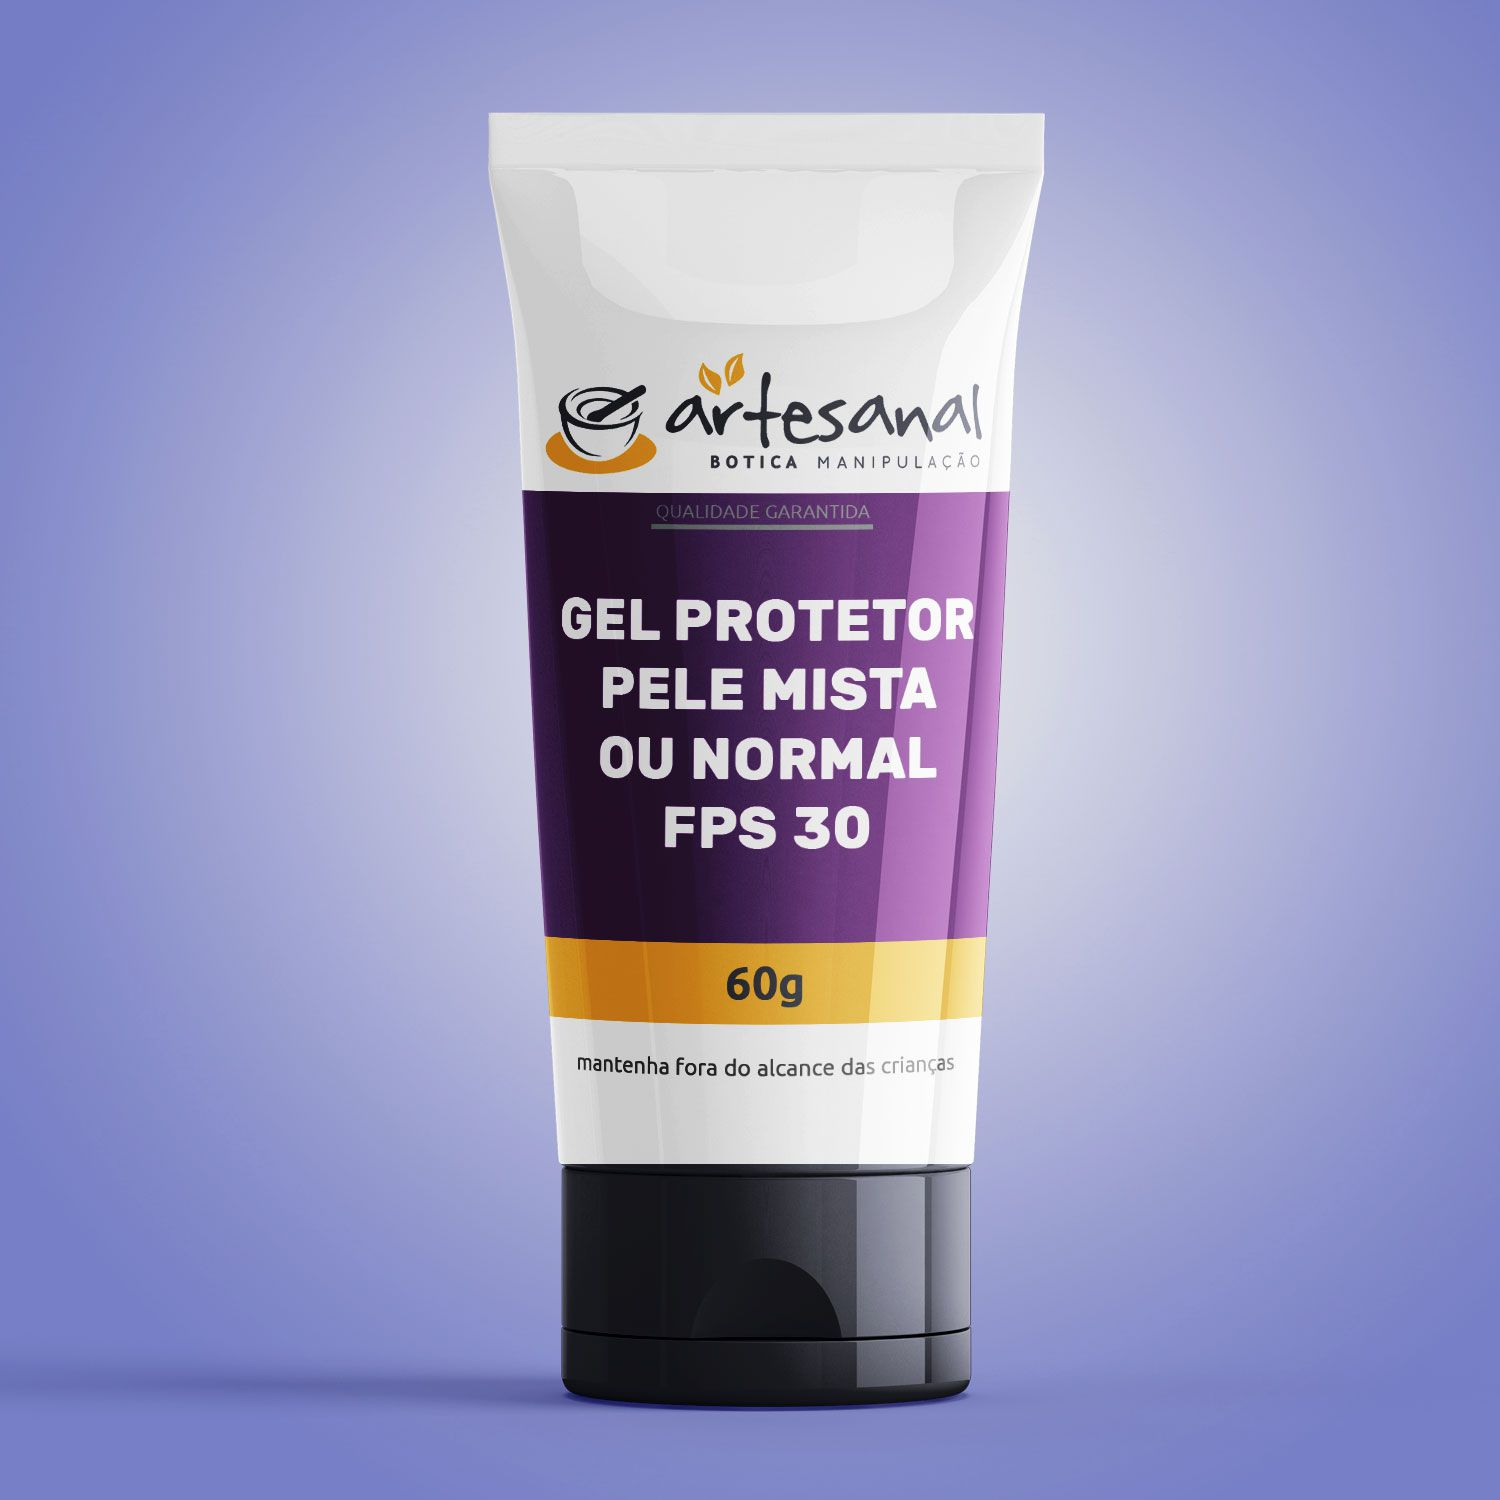 Gel Protetor - Pele Mista Ou Normal Fps 30 - 60g